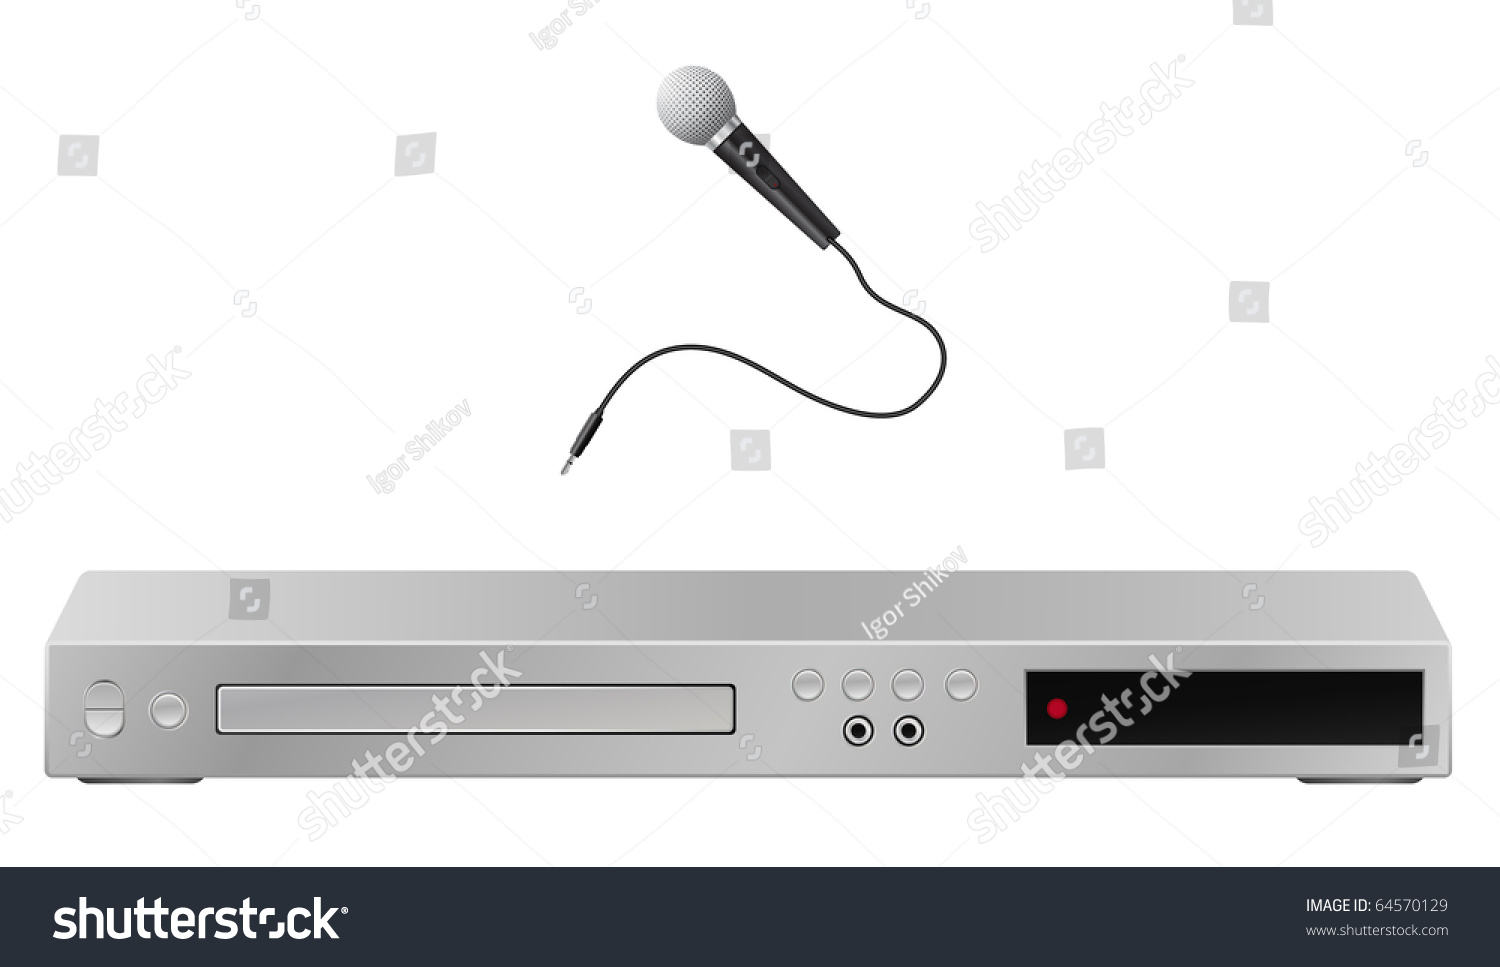 how to connect microphone to dvd player